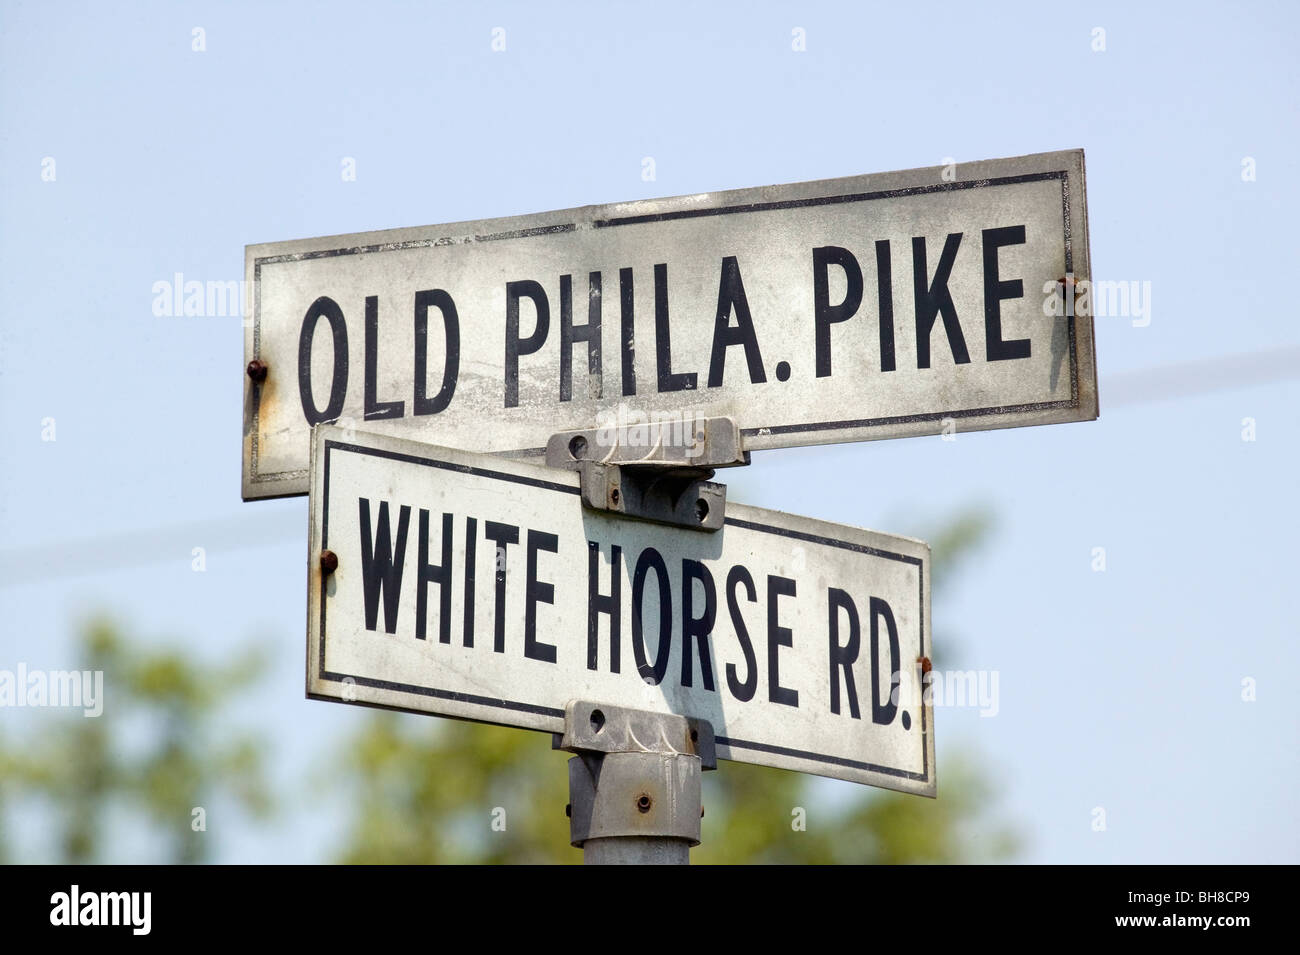 Old street sign in Lancaster County Old Phila Pike and White Horse Road, Pennsylvania - Stock Image